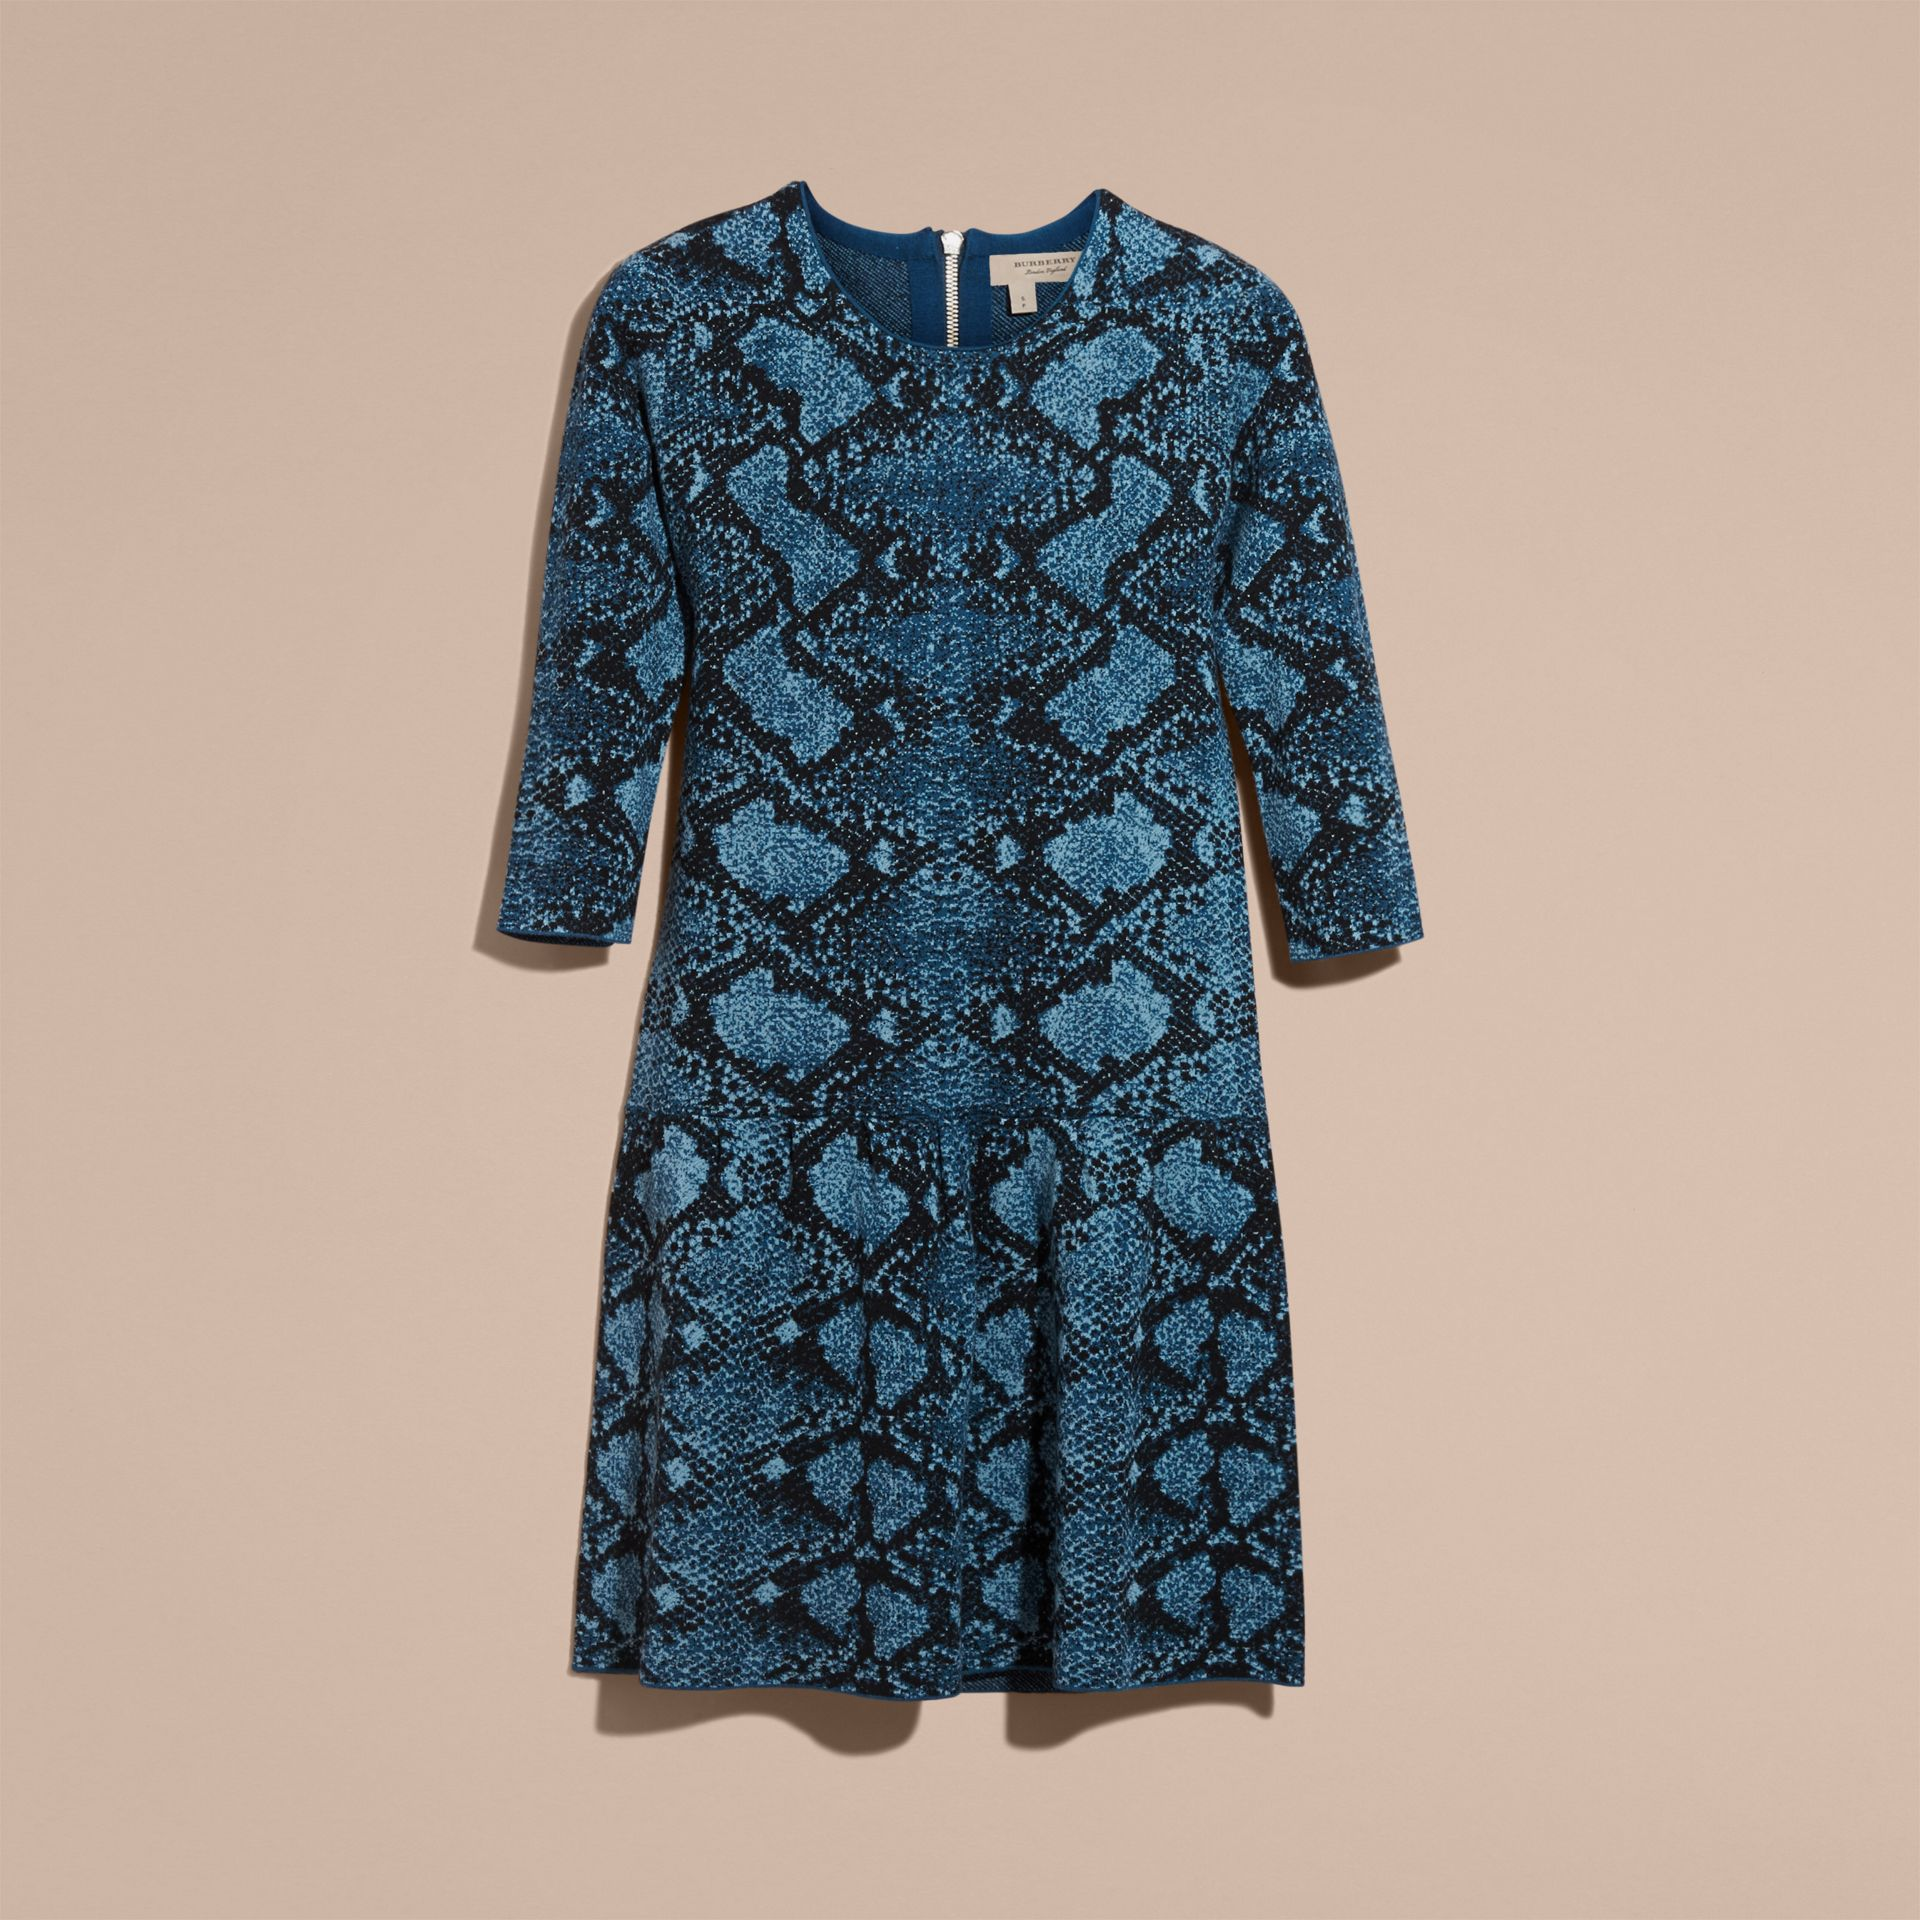 Mineral blue Python Jacquard Merino Wool Dress - gallery image 4